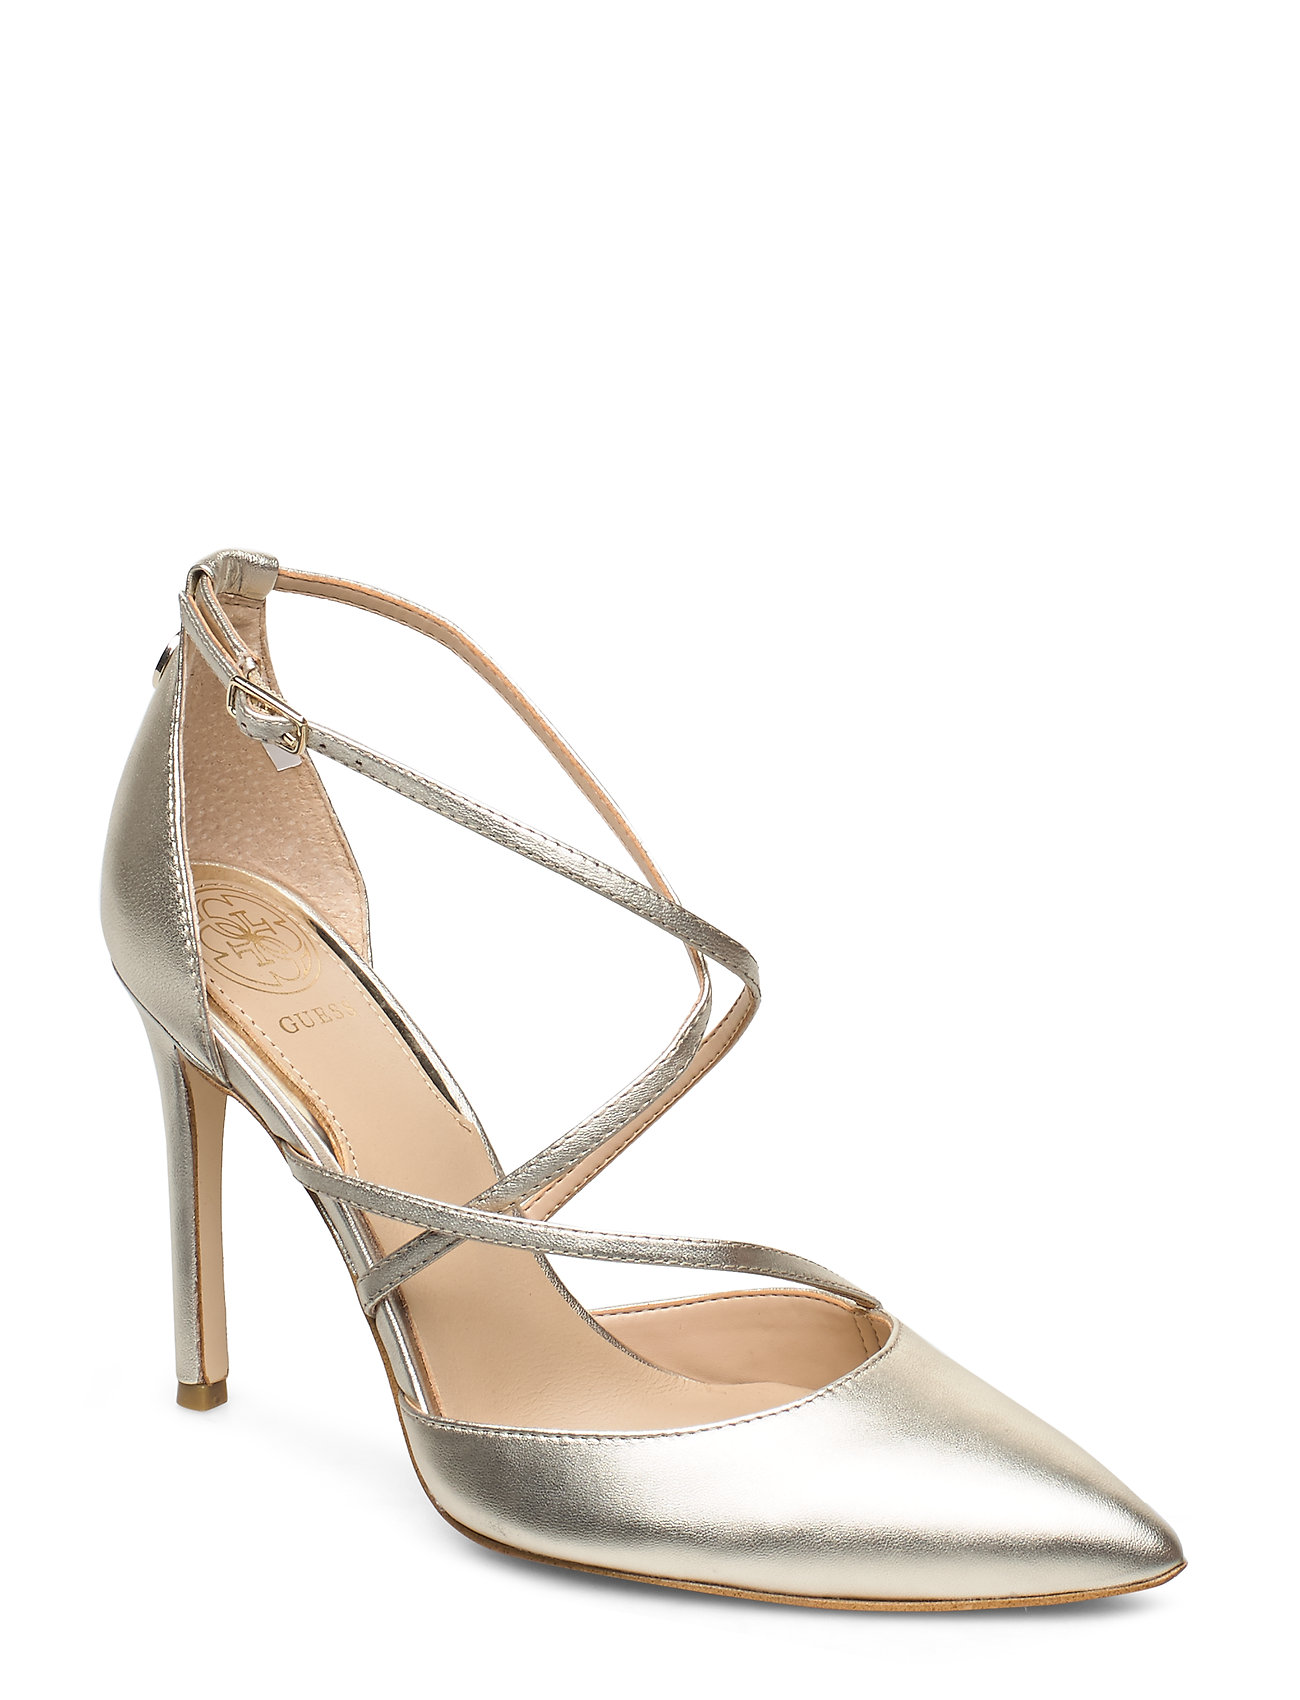 GUESS CLAUDIE/DECOLLETE (PUMP)/LEATH - GOLD